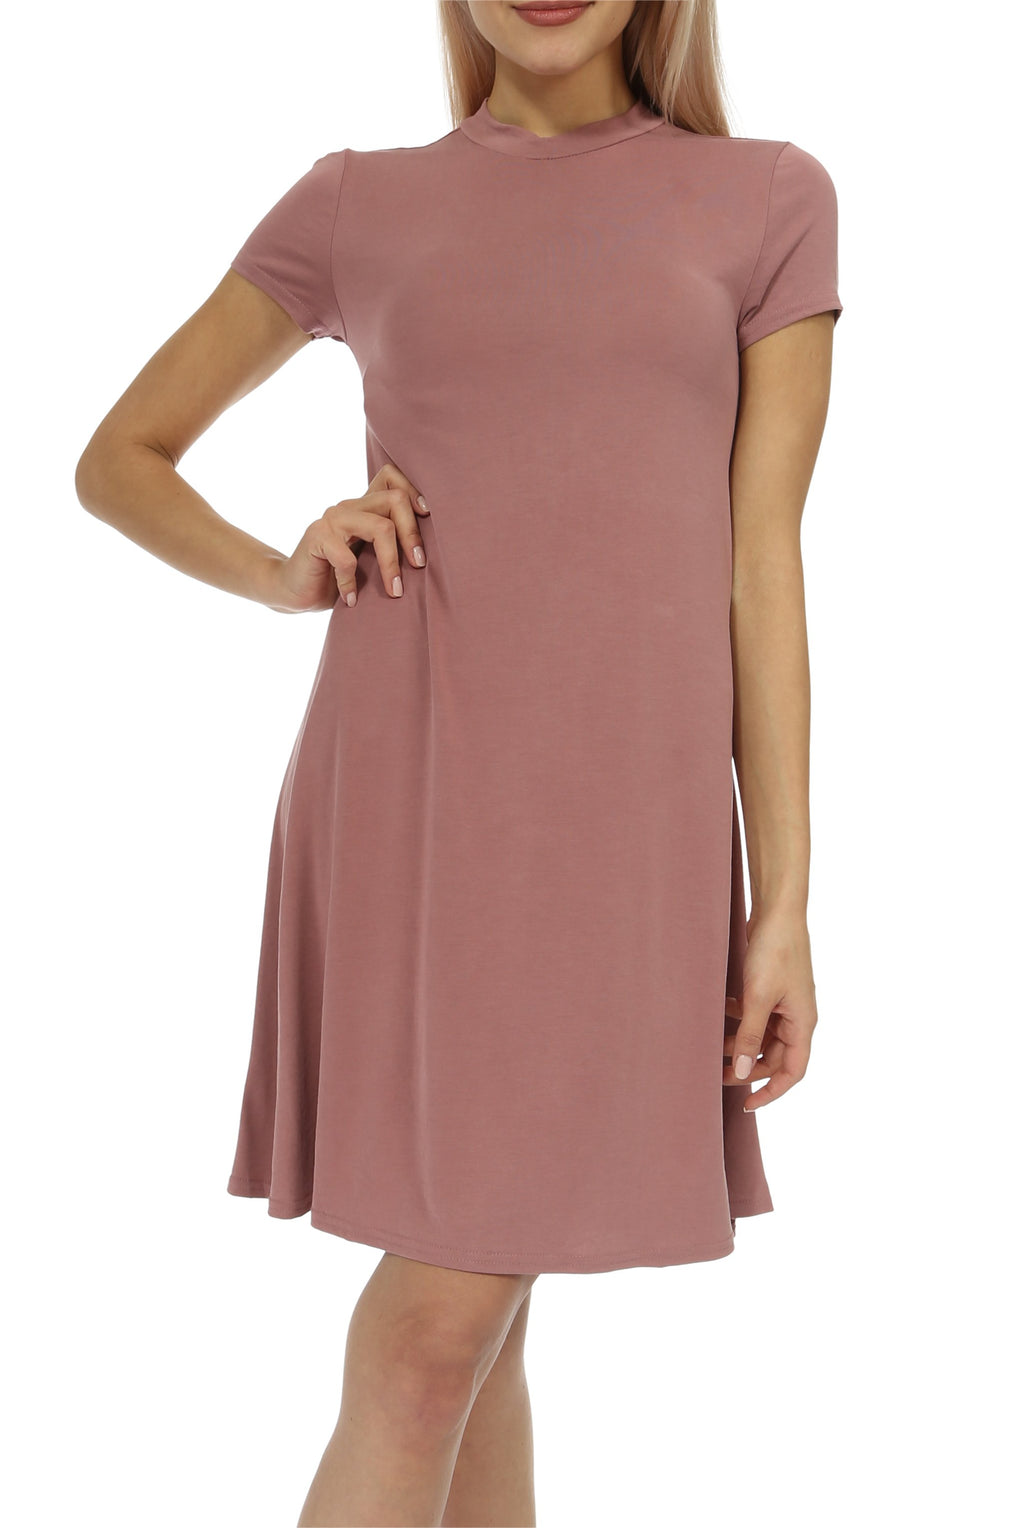 Teeze Me | Cap Sleeve Mock Neck Loose T-Shirt Dress | Vintage Rose - Teeze Me